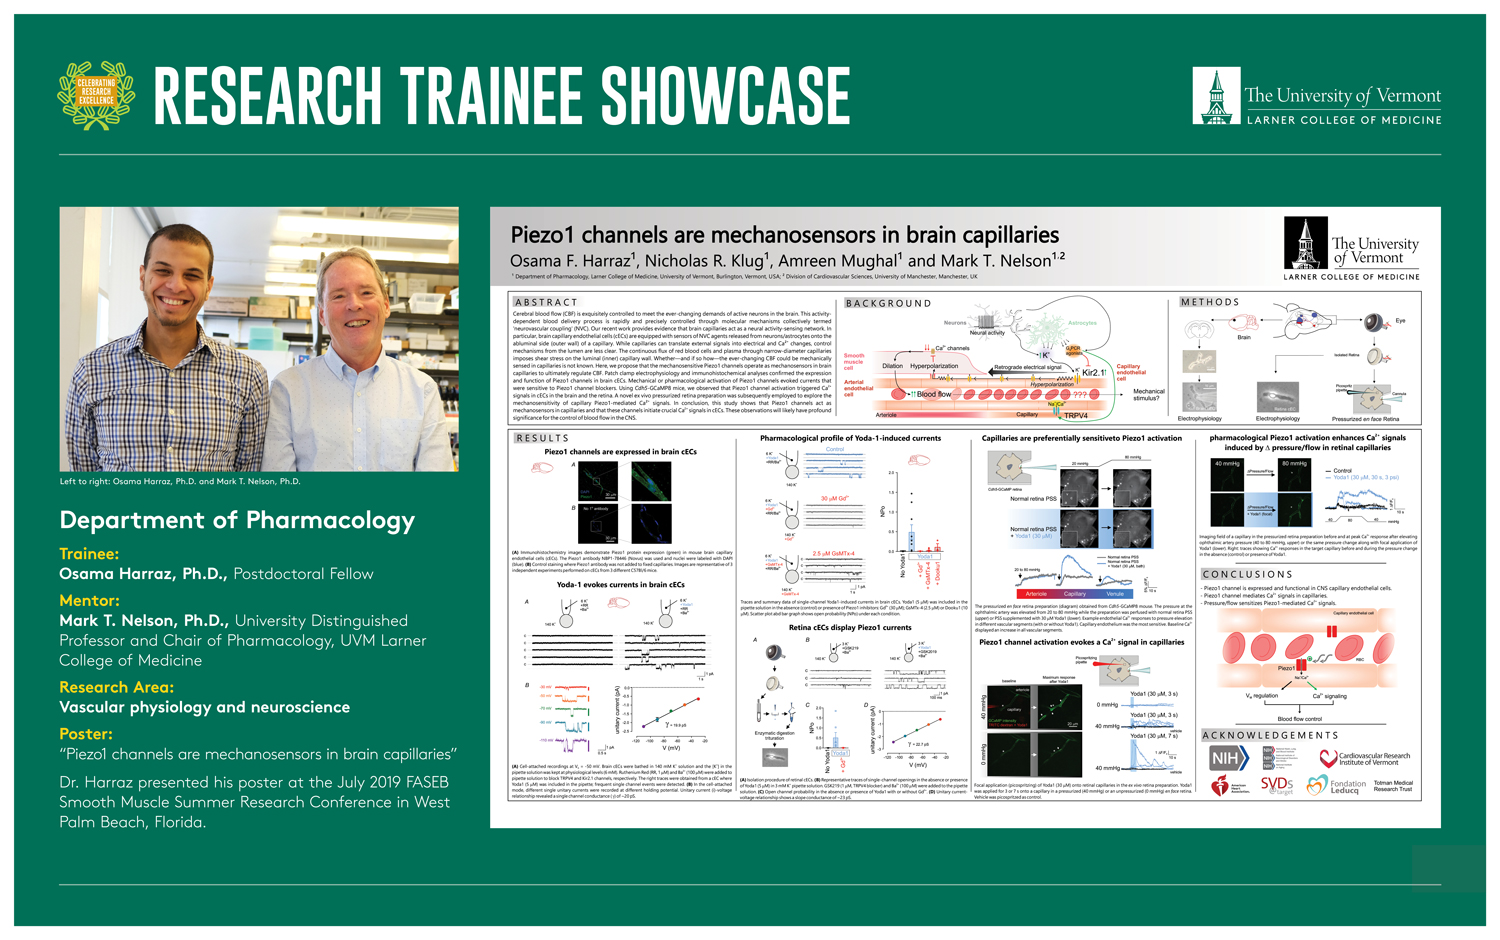 Research Trainee Showcase poster with graphics